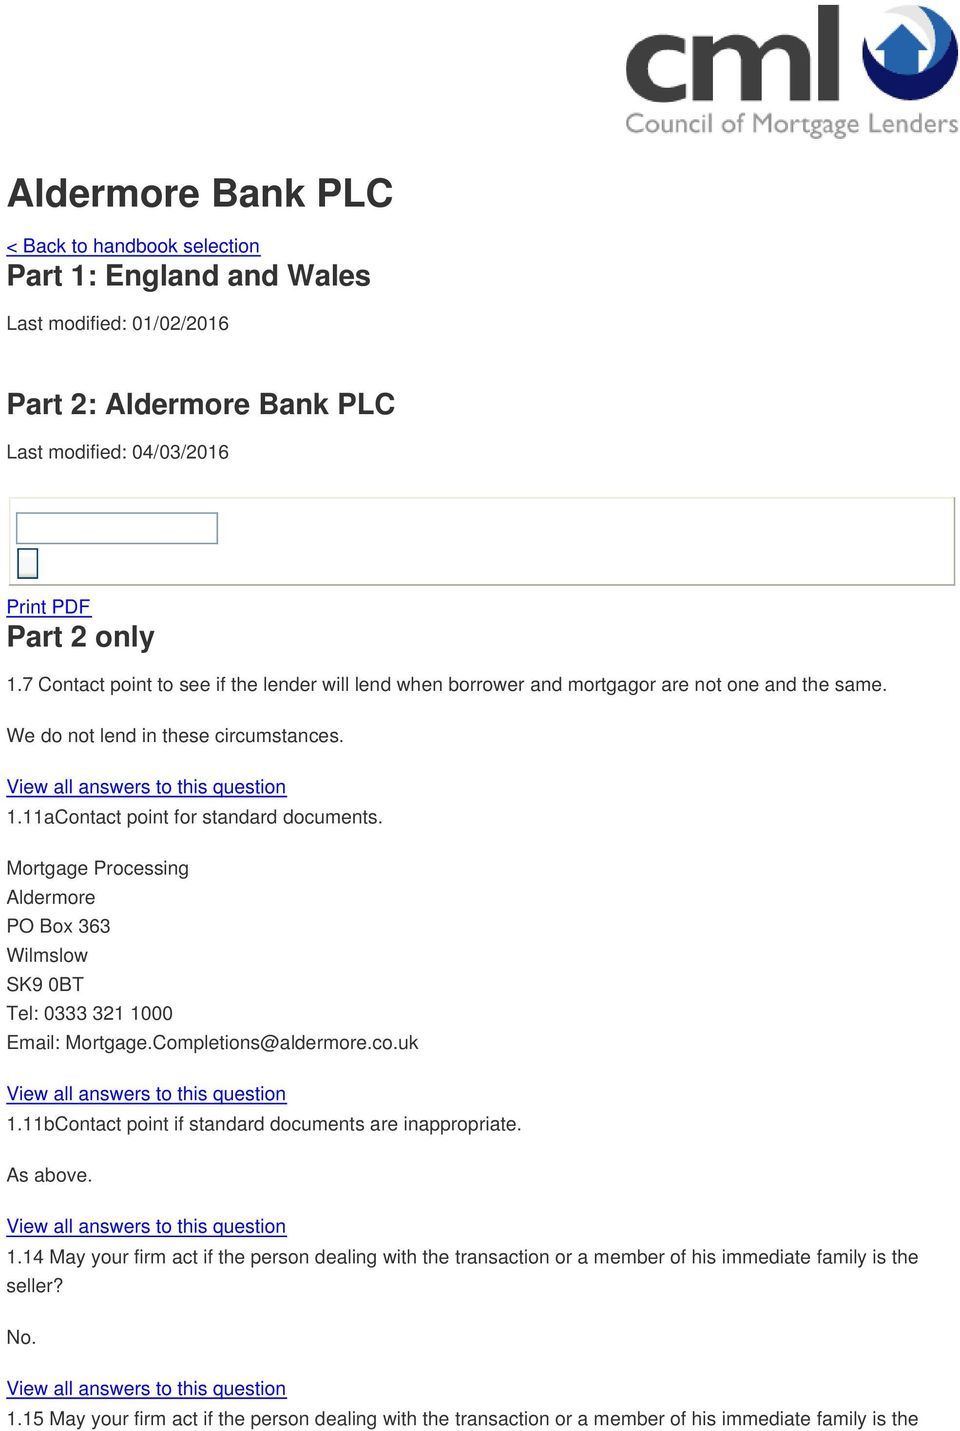 Mortgage Processing Aldermore PO Box 363 Wilmslow SK9 0BT Tel: 0333 321 1000 Email: Mortgage.Completions@aldermore.co.uk 1.11bContact point if standard documents are inappropriate. As above. 1.14 May your firm act if the person dealing with the transaction or a member of his immediate family is the seller?